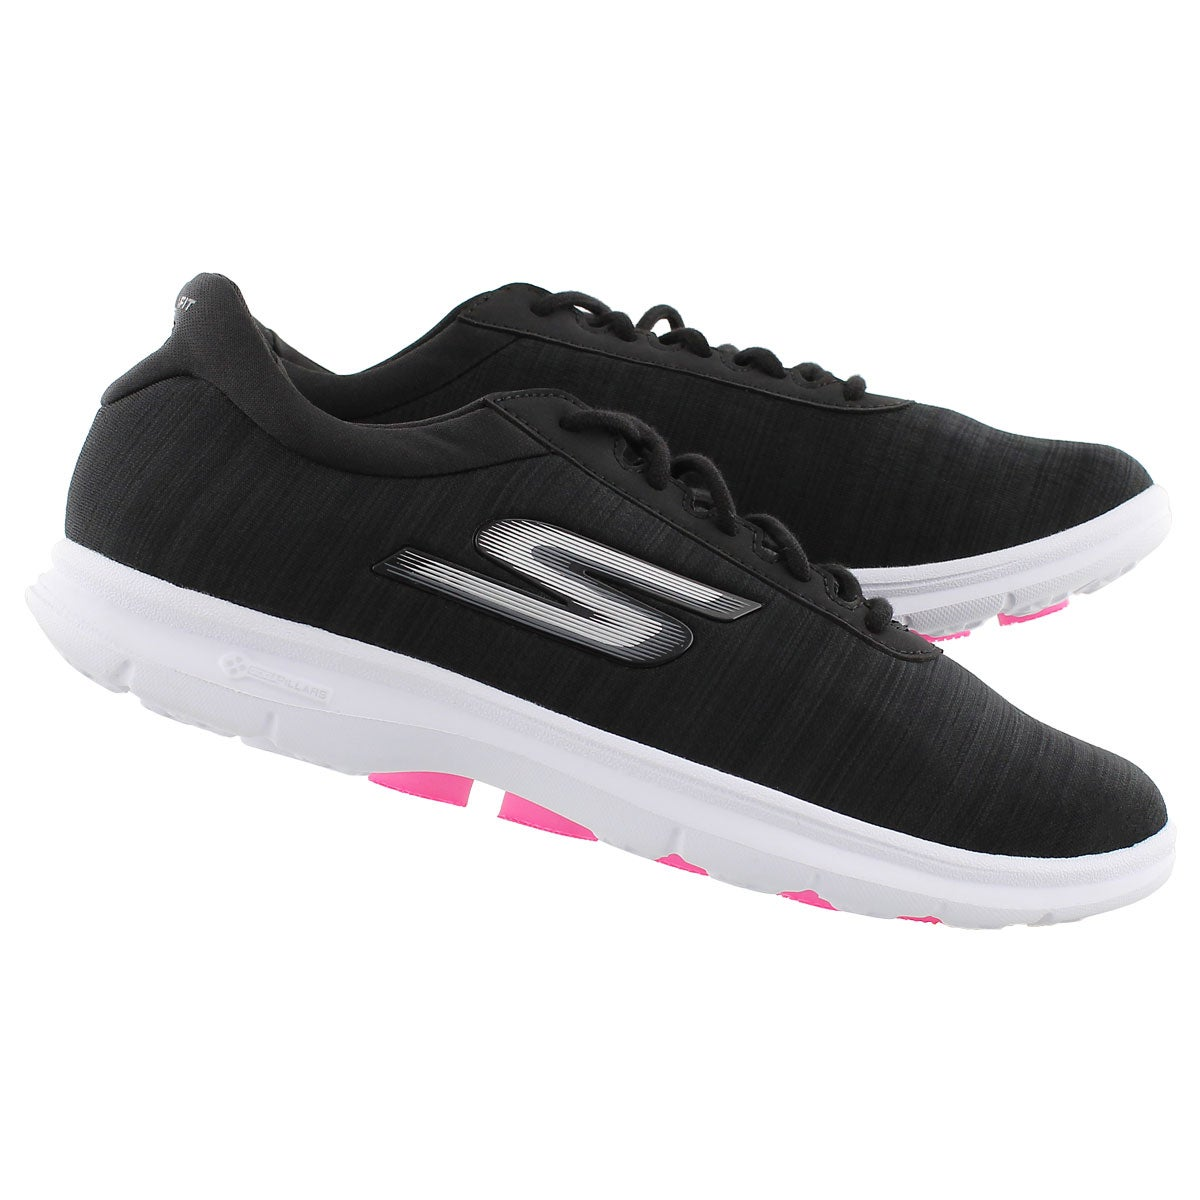 Lds GOstep Unmatched blk/wht sneaker